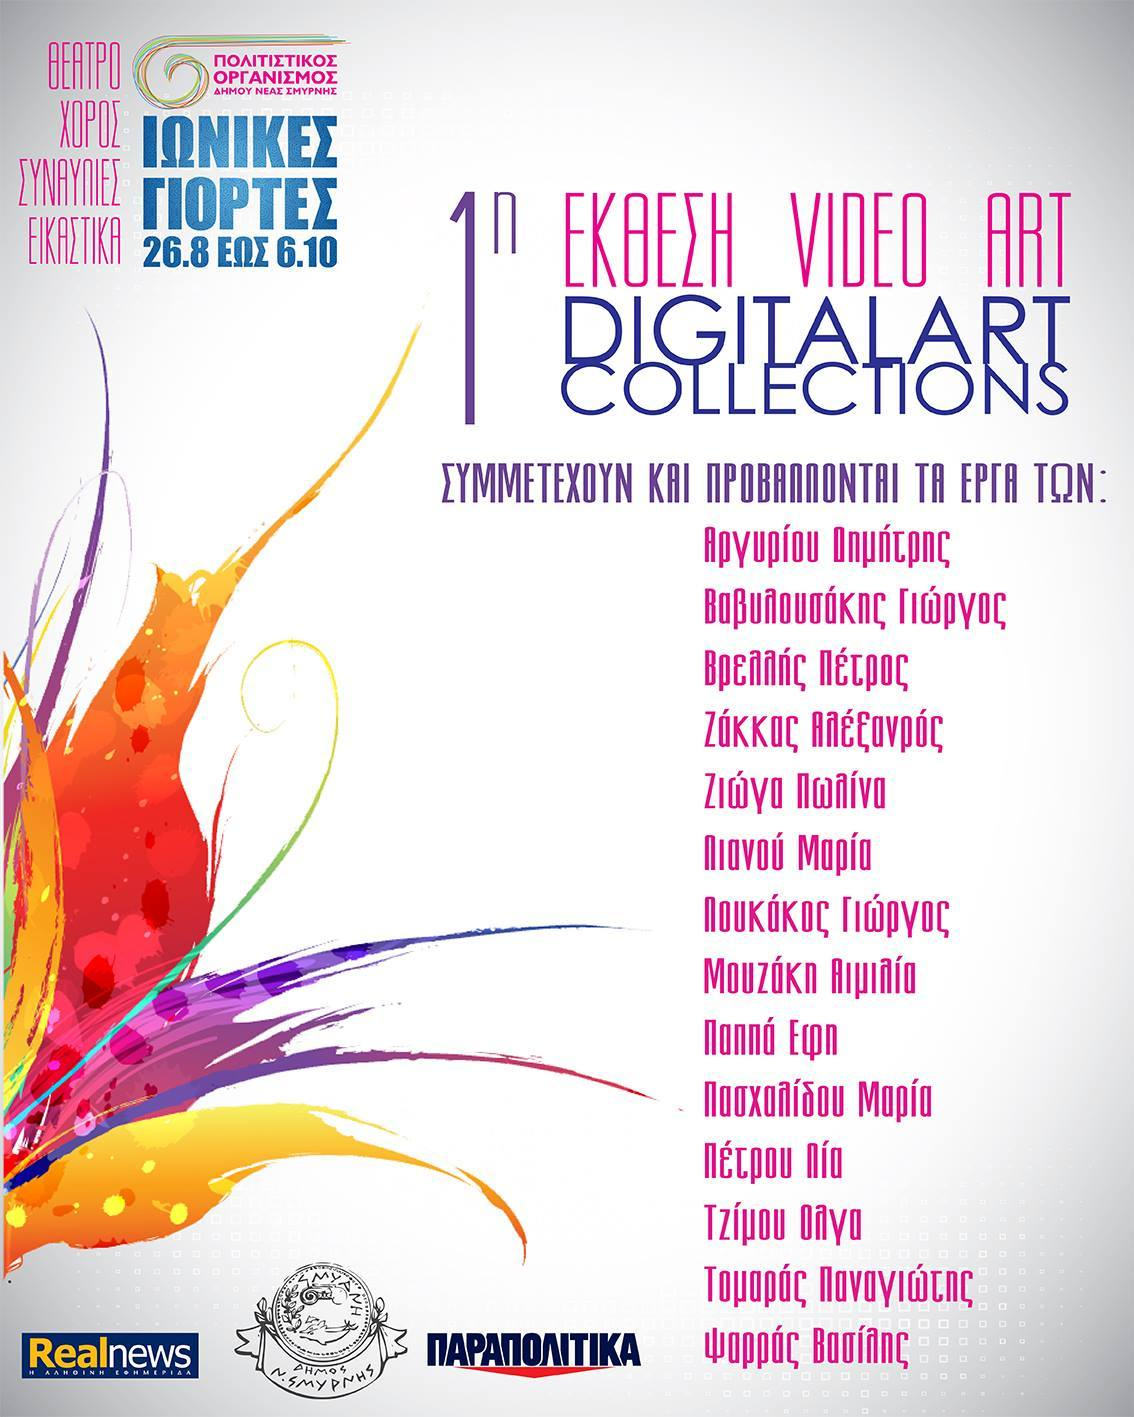 Videoart Exhibition Digital Art Collections-Ionikes Giortes 2014